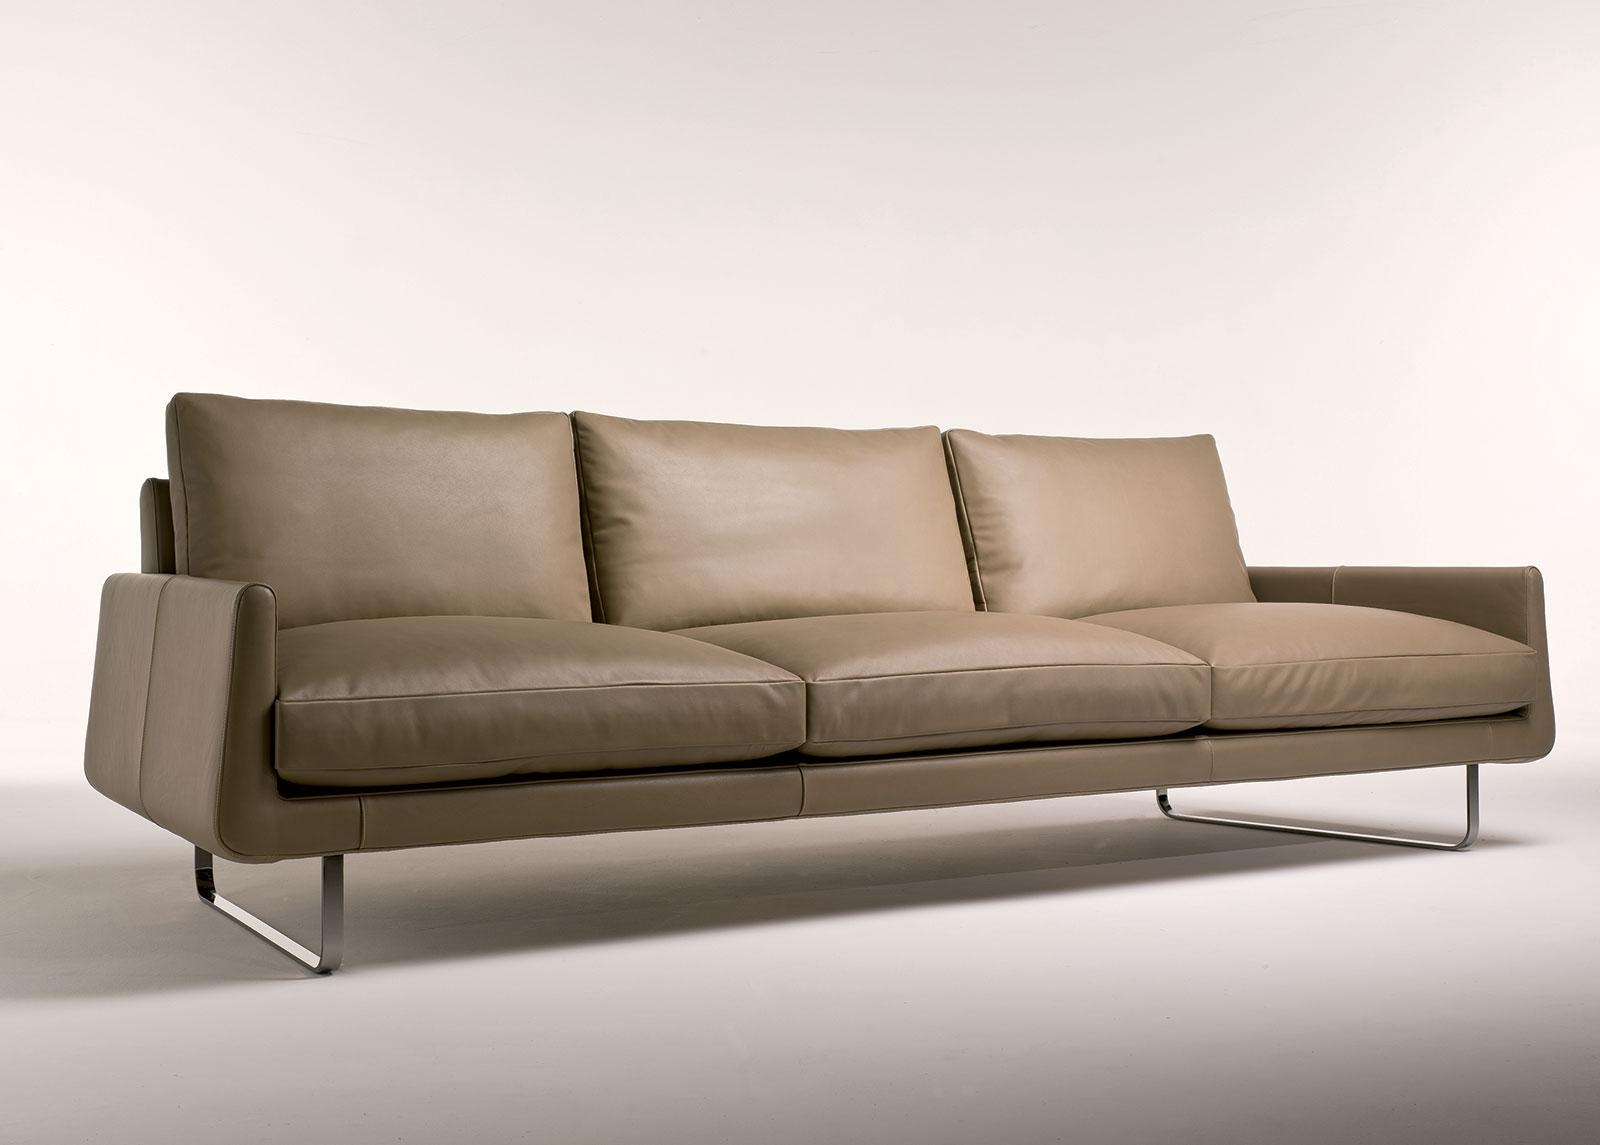 Joshua 4 Seater Leather Sofa | Shop Online – Italy Dream Design With 4 Seater Sofas (Image 18 of 20)